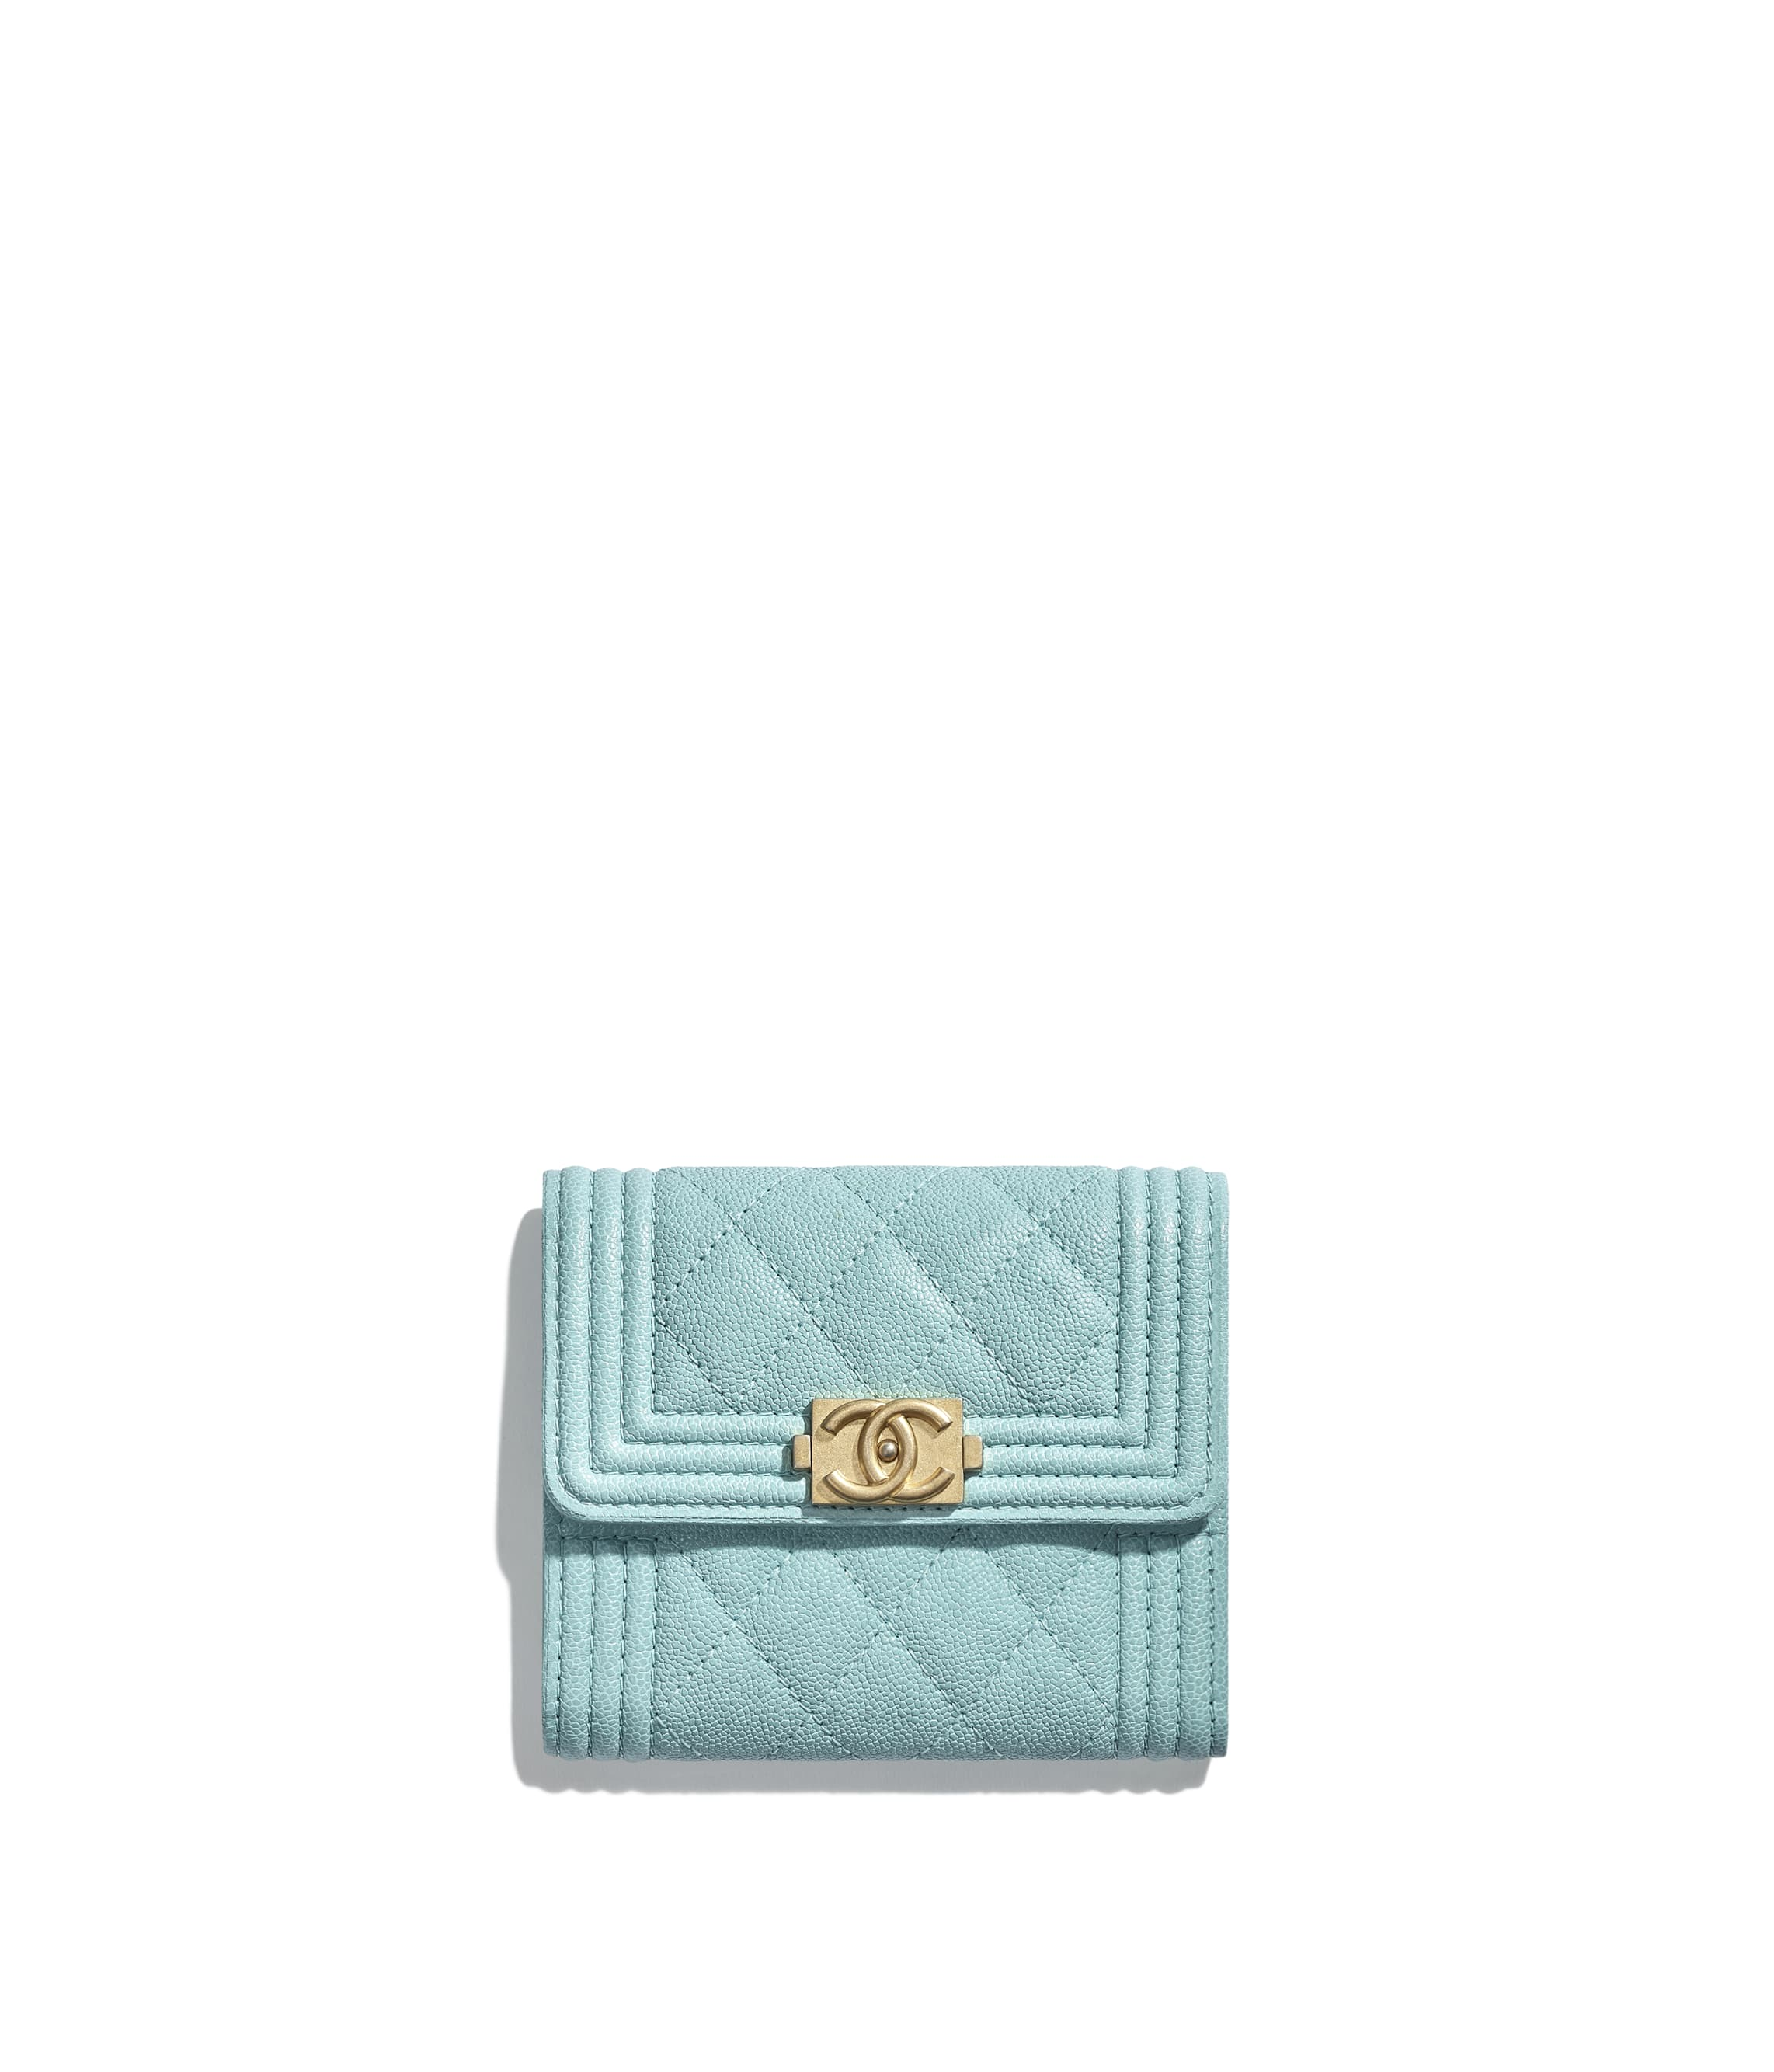 BOY CHANEL Small Flap Wallet